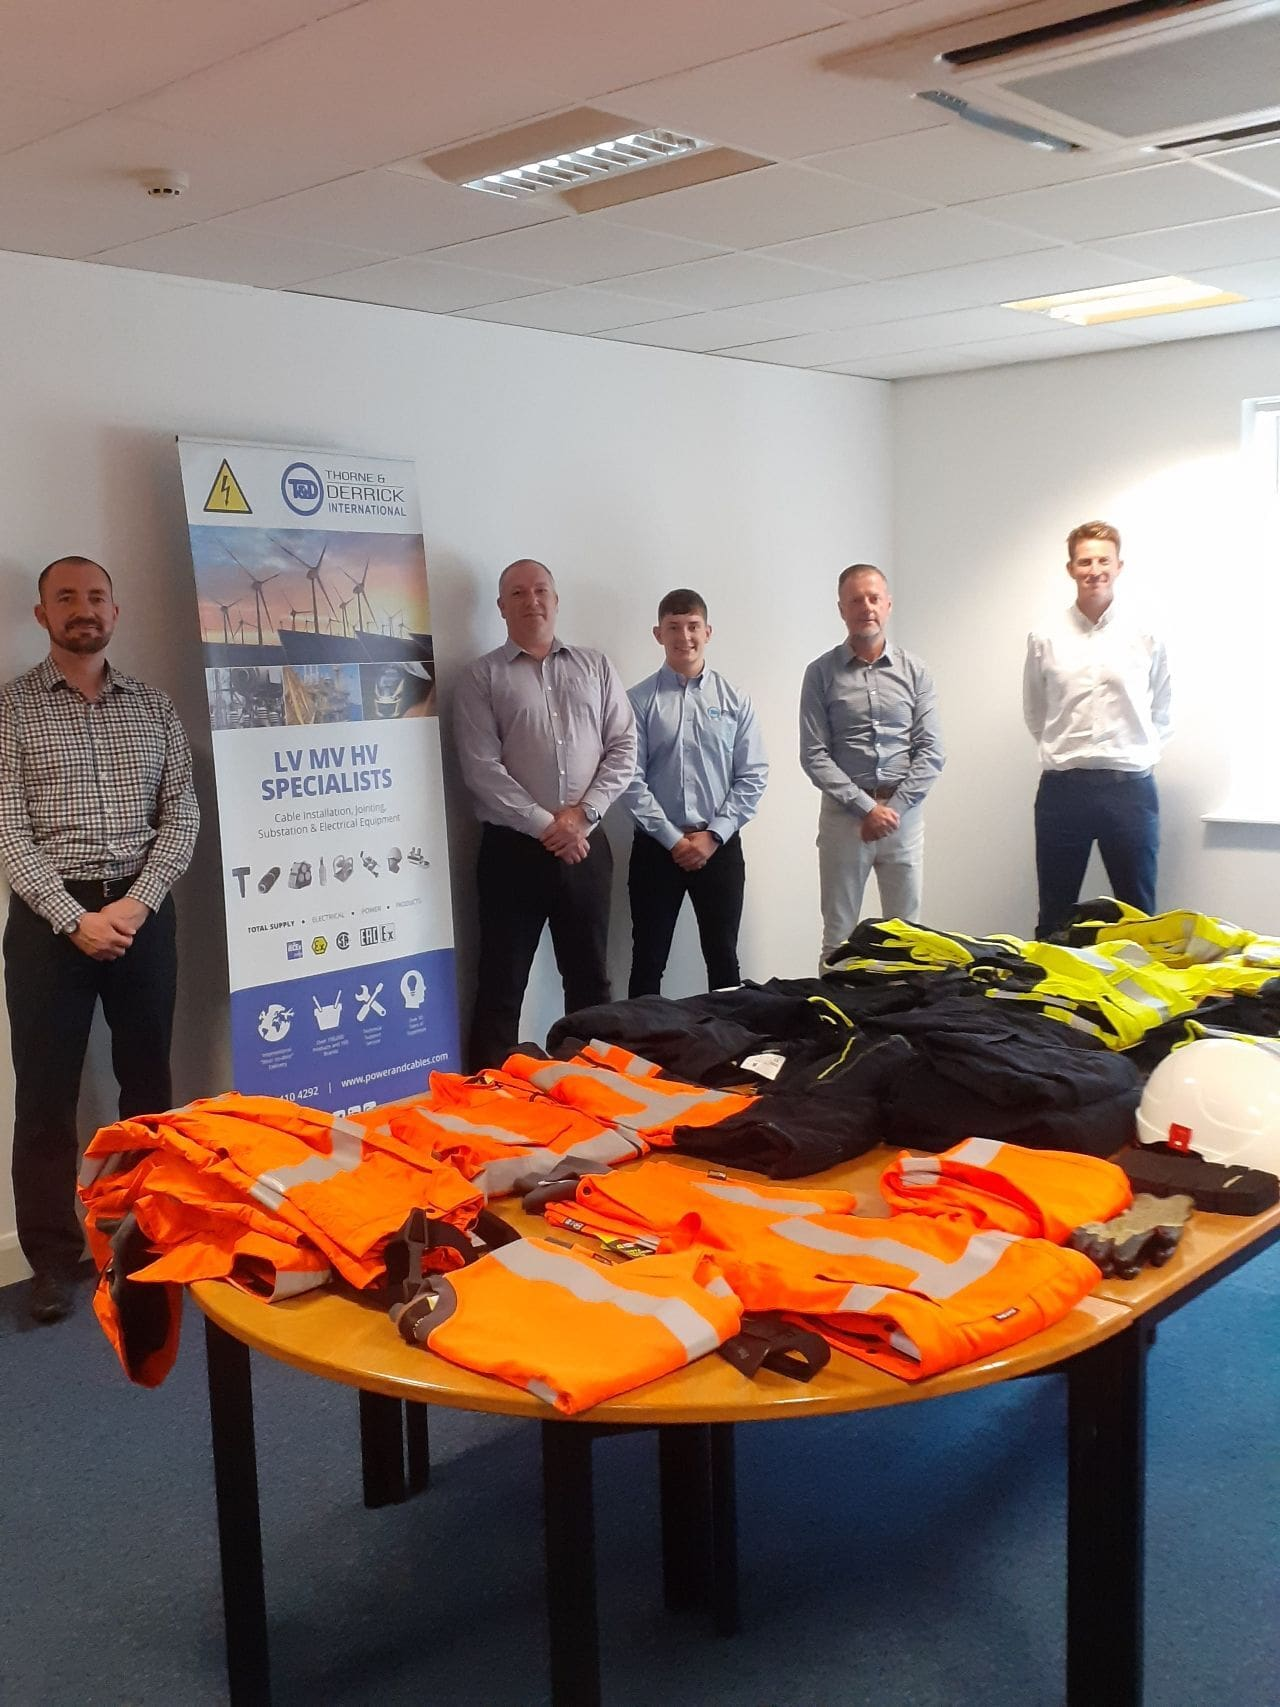 Pictured: Paul Hertherington (National Key Account Manager | ProGARM) during recent Technical Training & Product Training Day at Thorne & Derrick with Dave Tinning, Carl Cox, Chris Dodds & Jonny Hewitt.